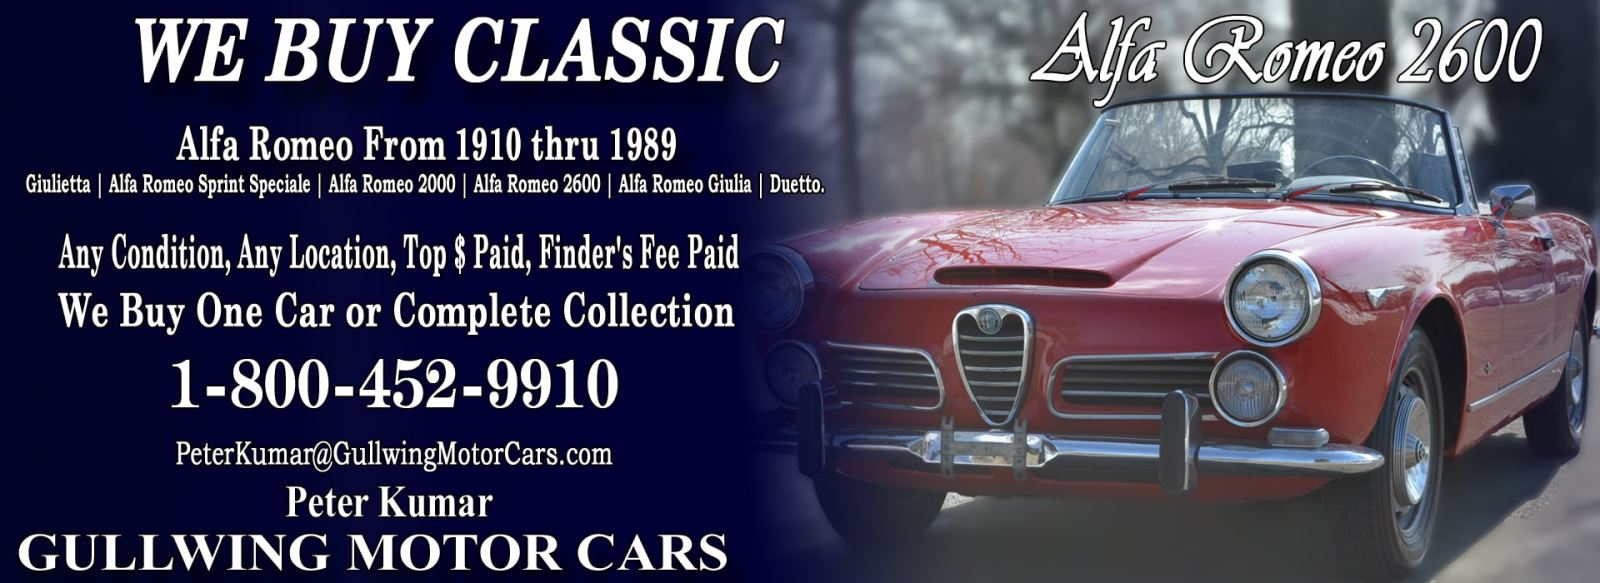 Classic Alfa Romeo 2600 for sale, we buy vintage Alfa Romeo 2600. Call Peter Kumar. Gullwing Motor